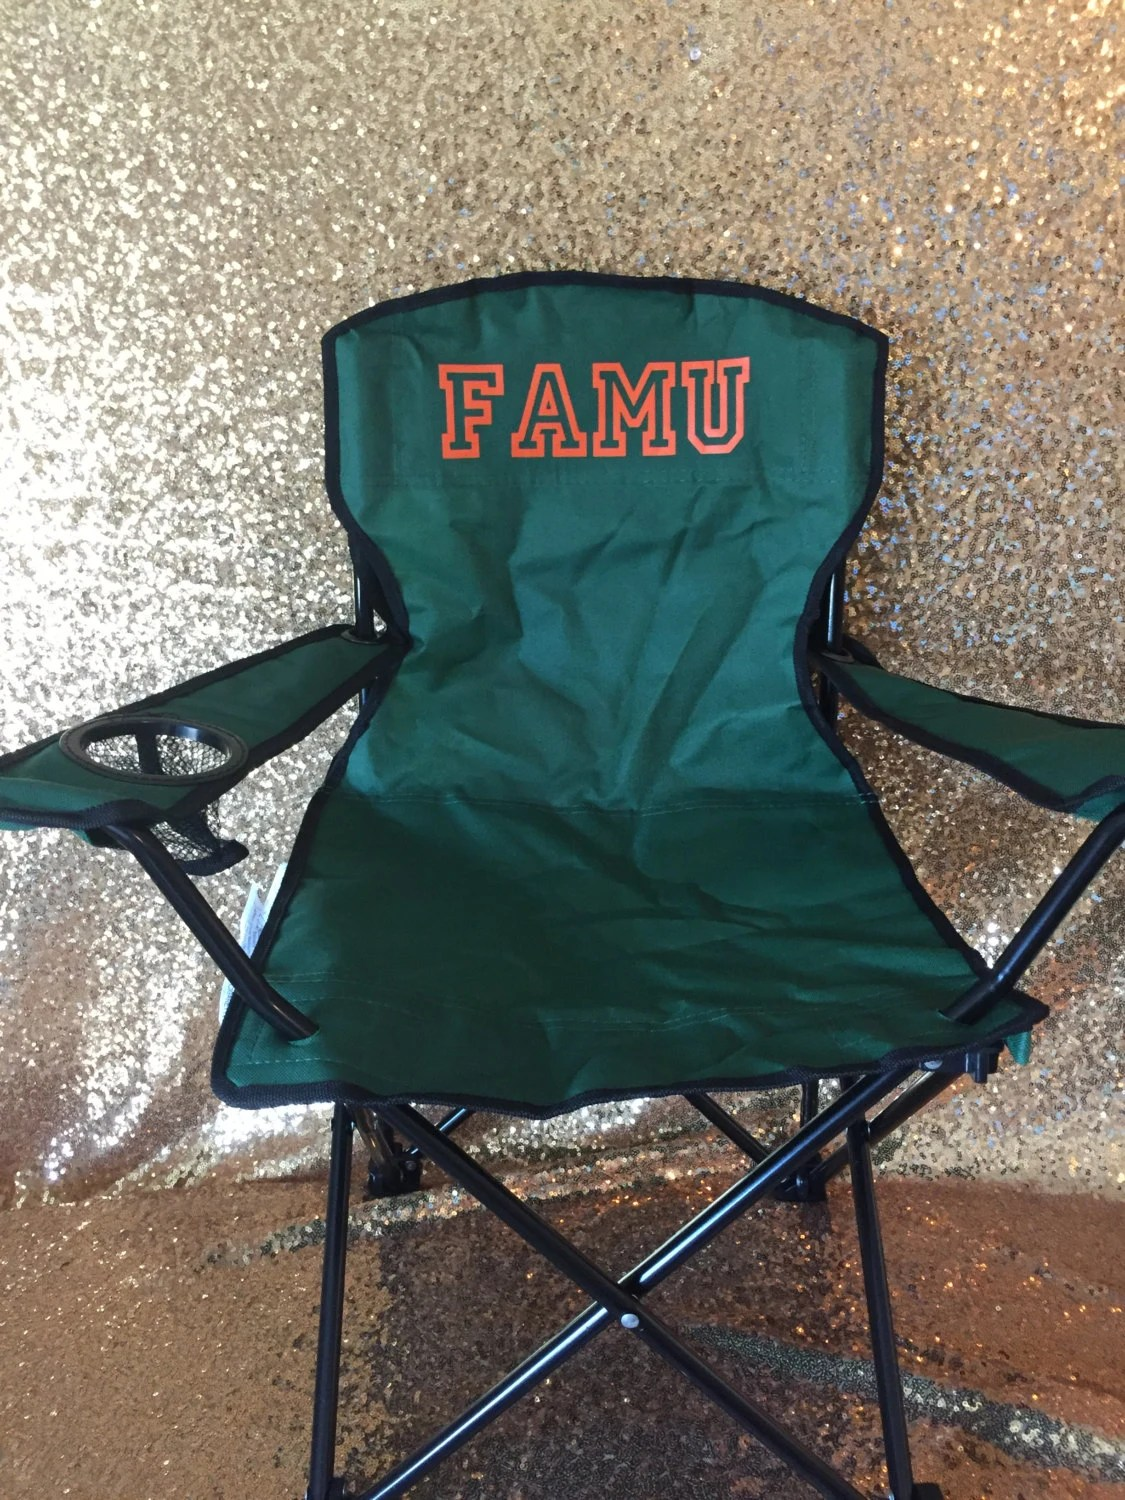 monogrammed toddler chair white wedding chairs for bride and groom famu folding camp with carrying bag